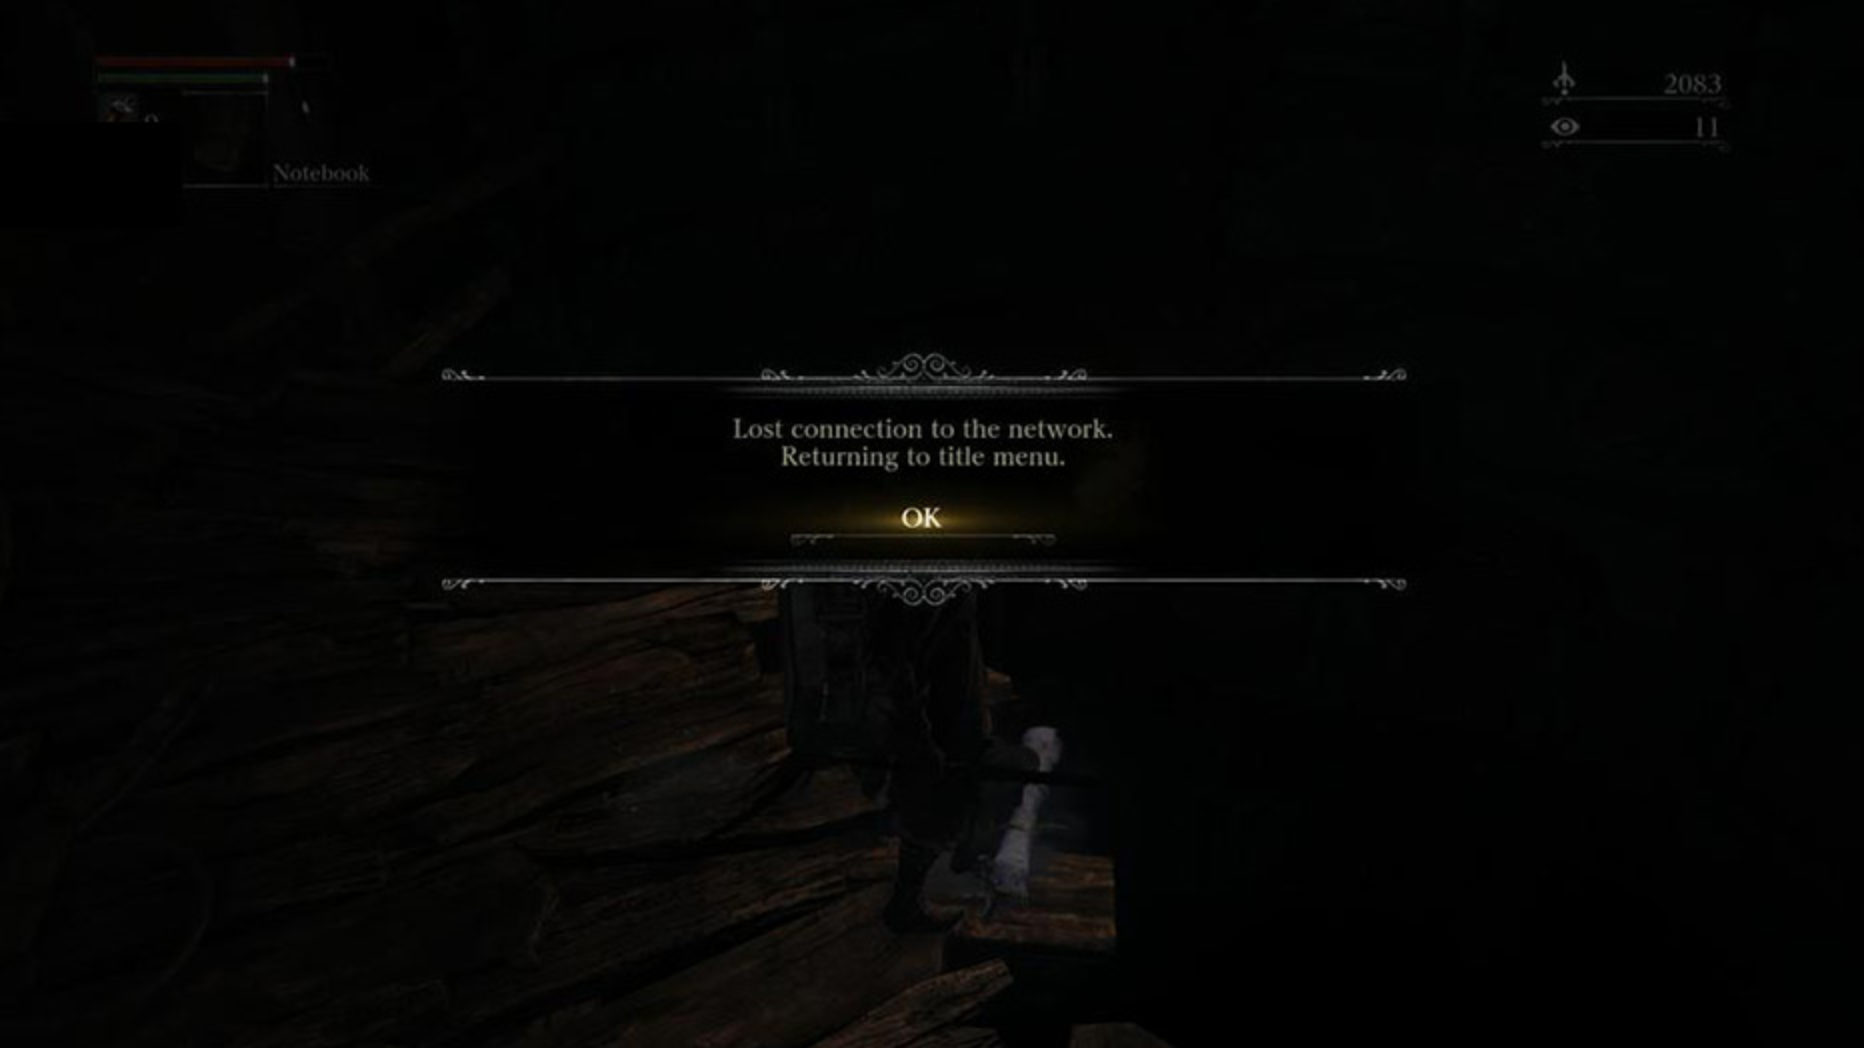 Discovered: Resume Bloodborne Online From Rest Mode